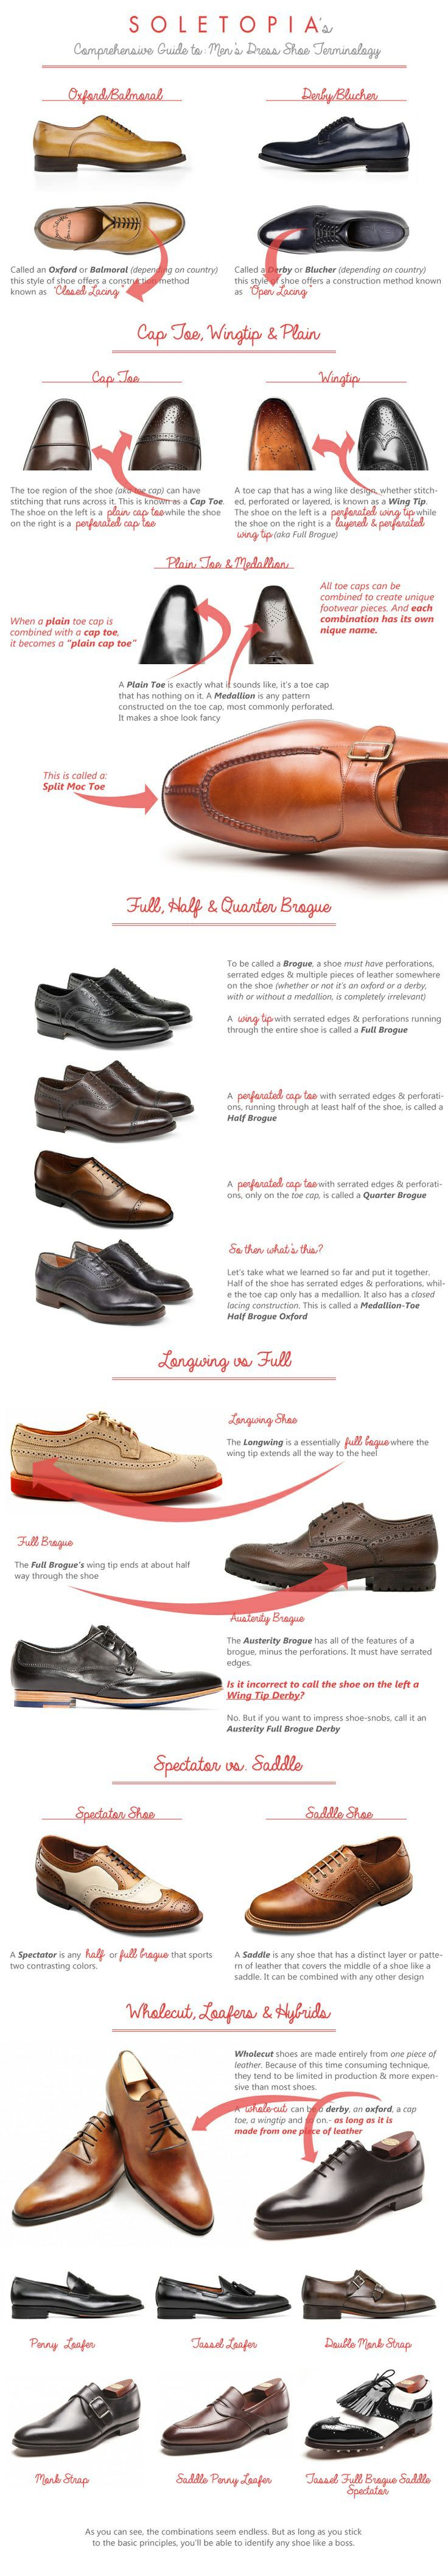 Here's a great guide to understanding the different types of men's dress shoes.